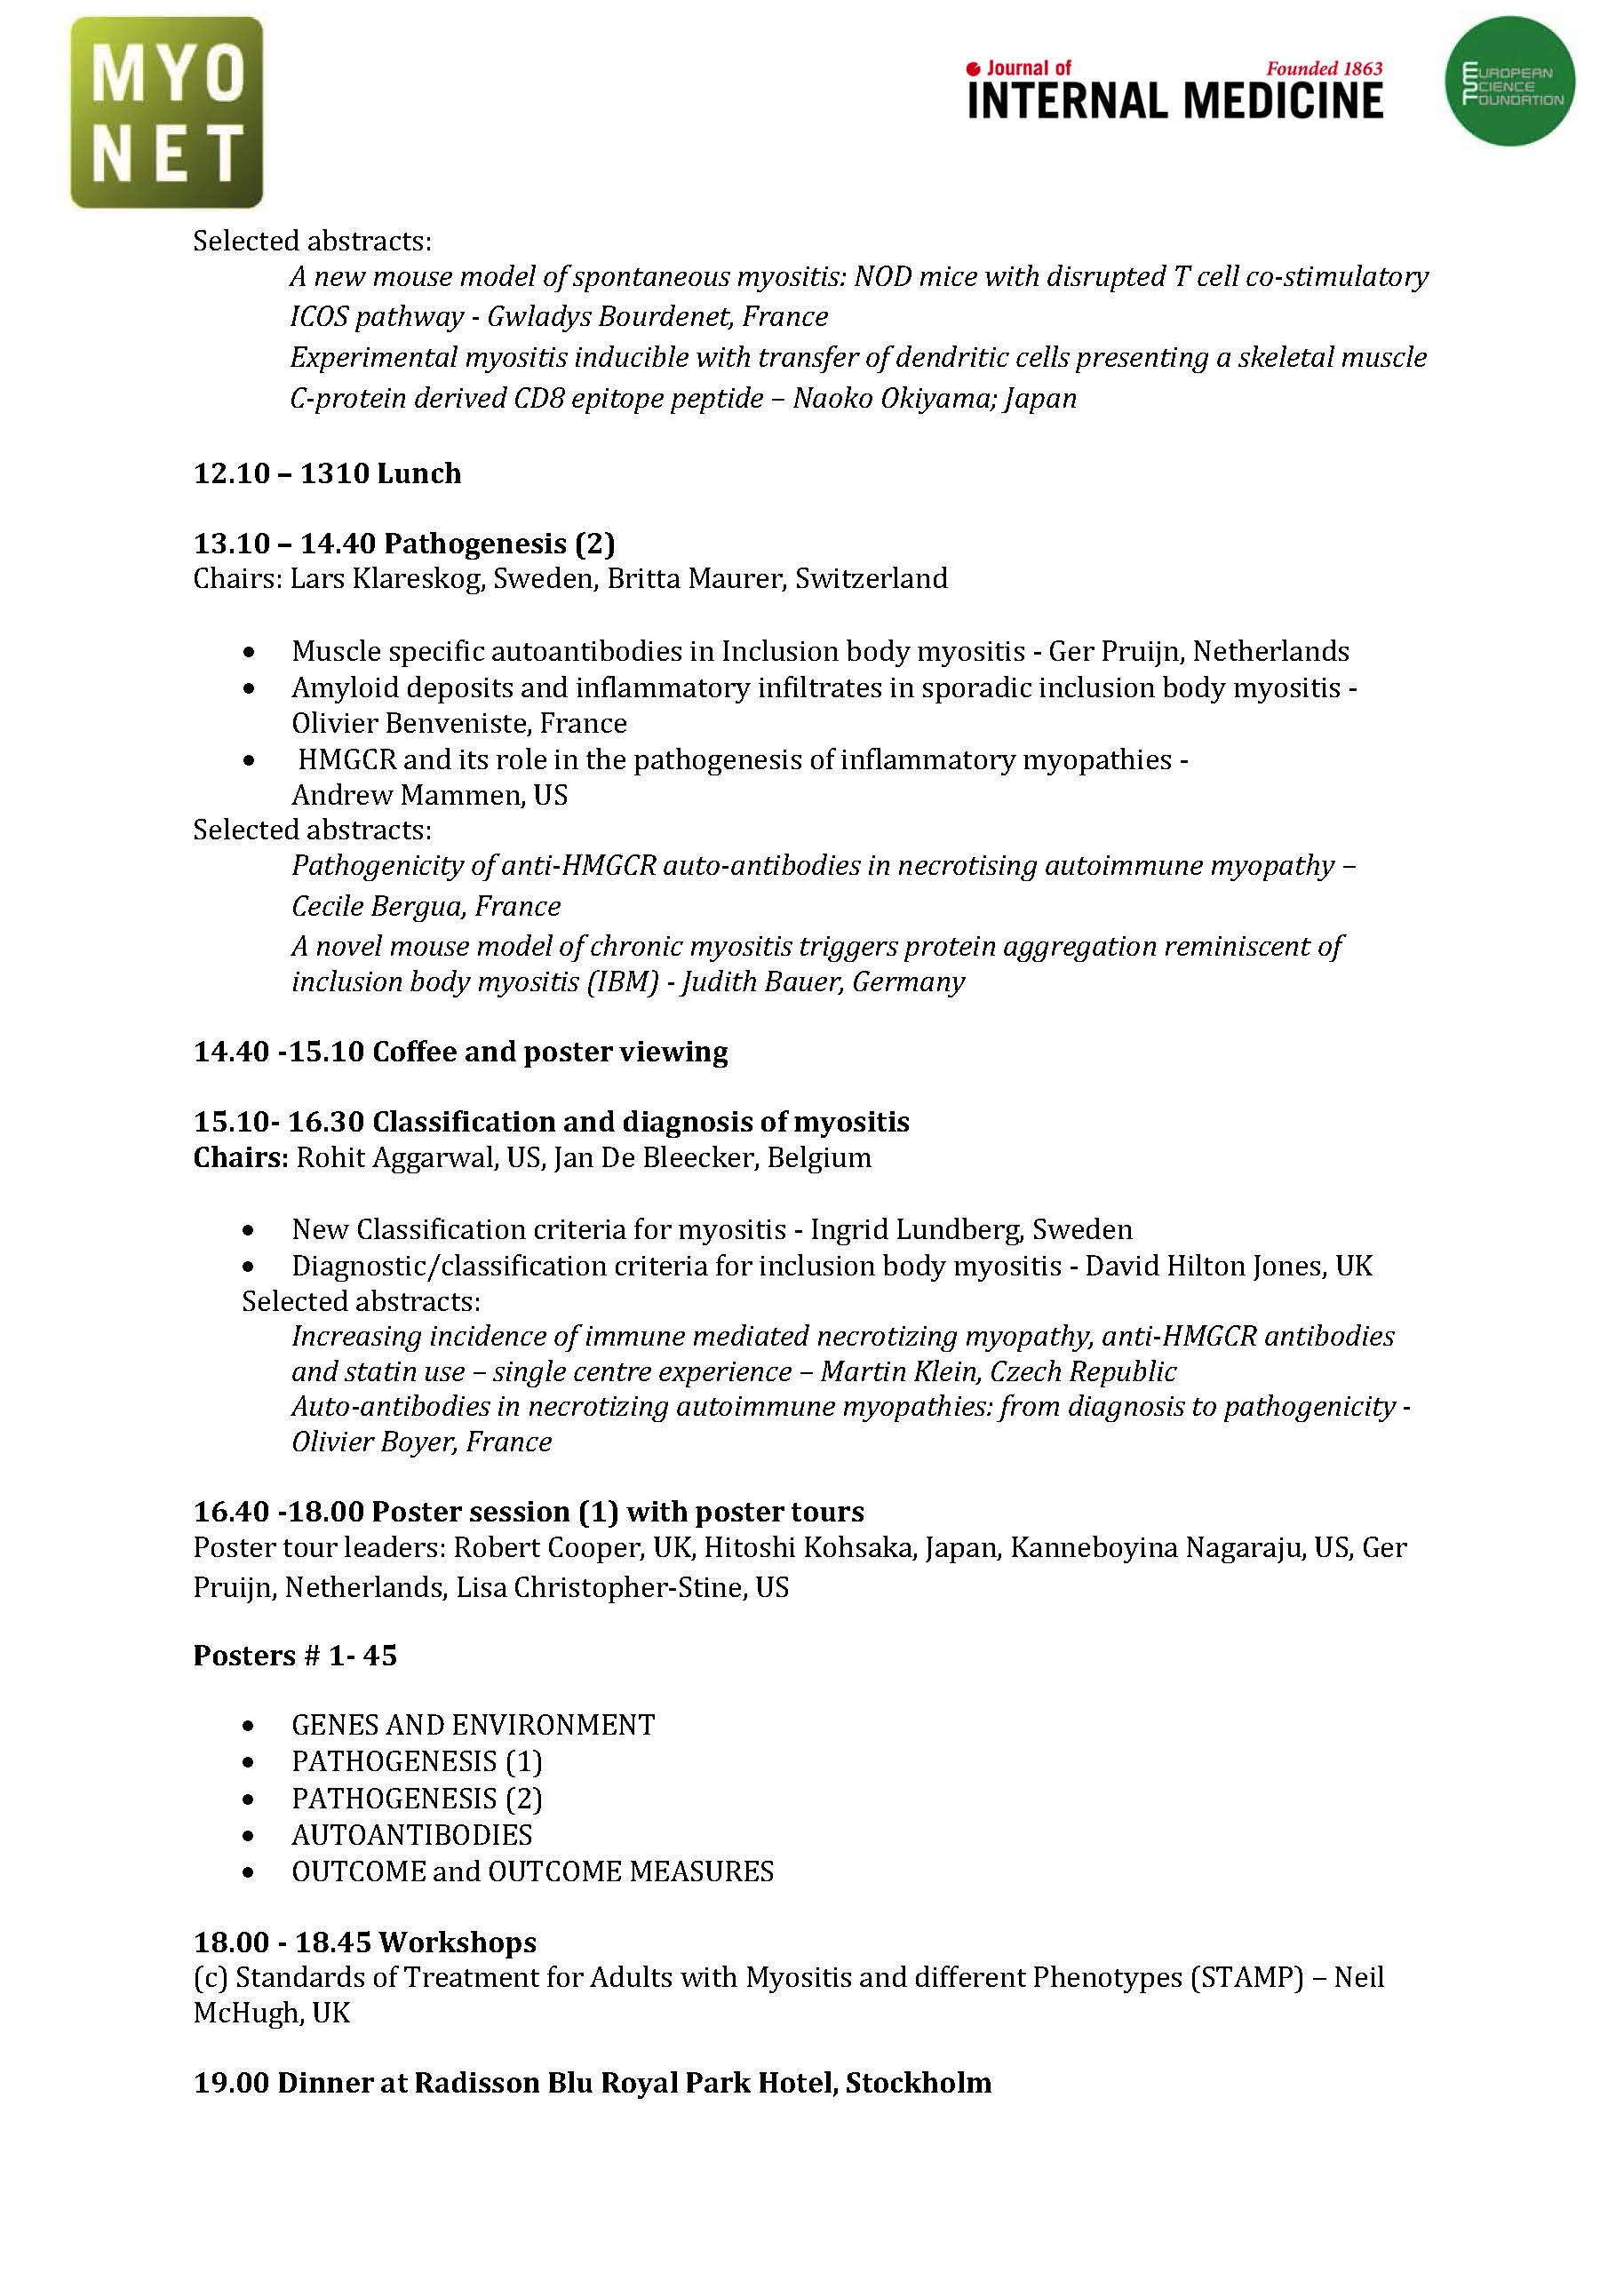 Updated program 2015 conf_150508b_Sida_2